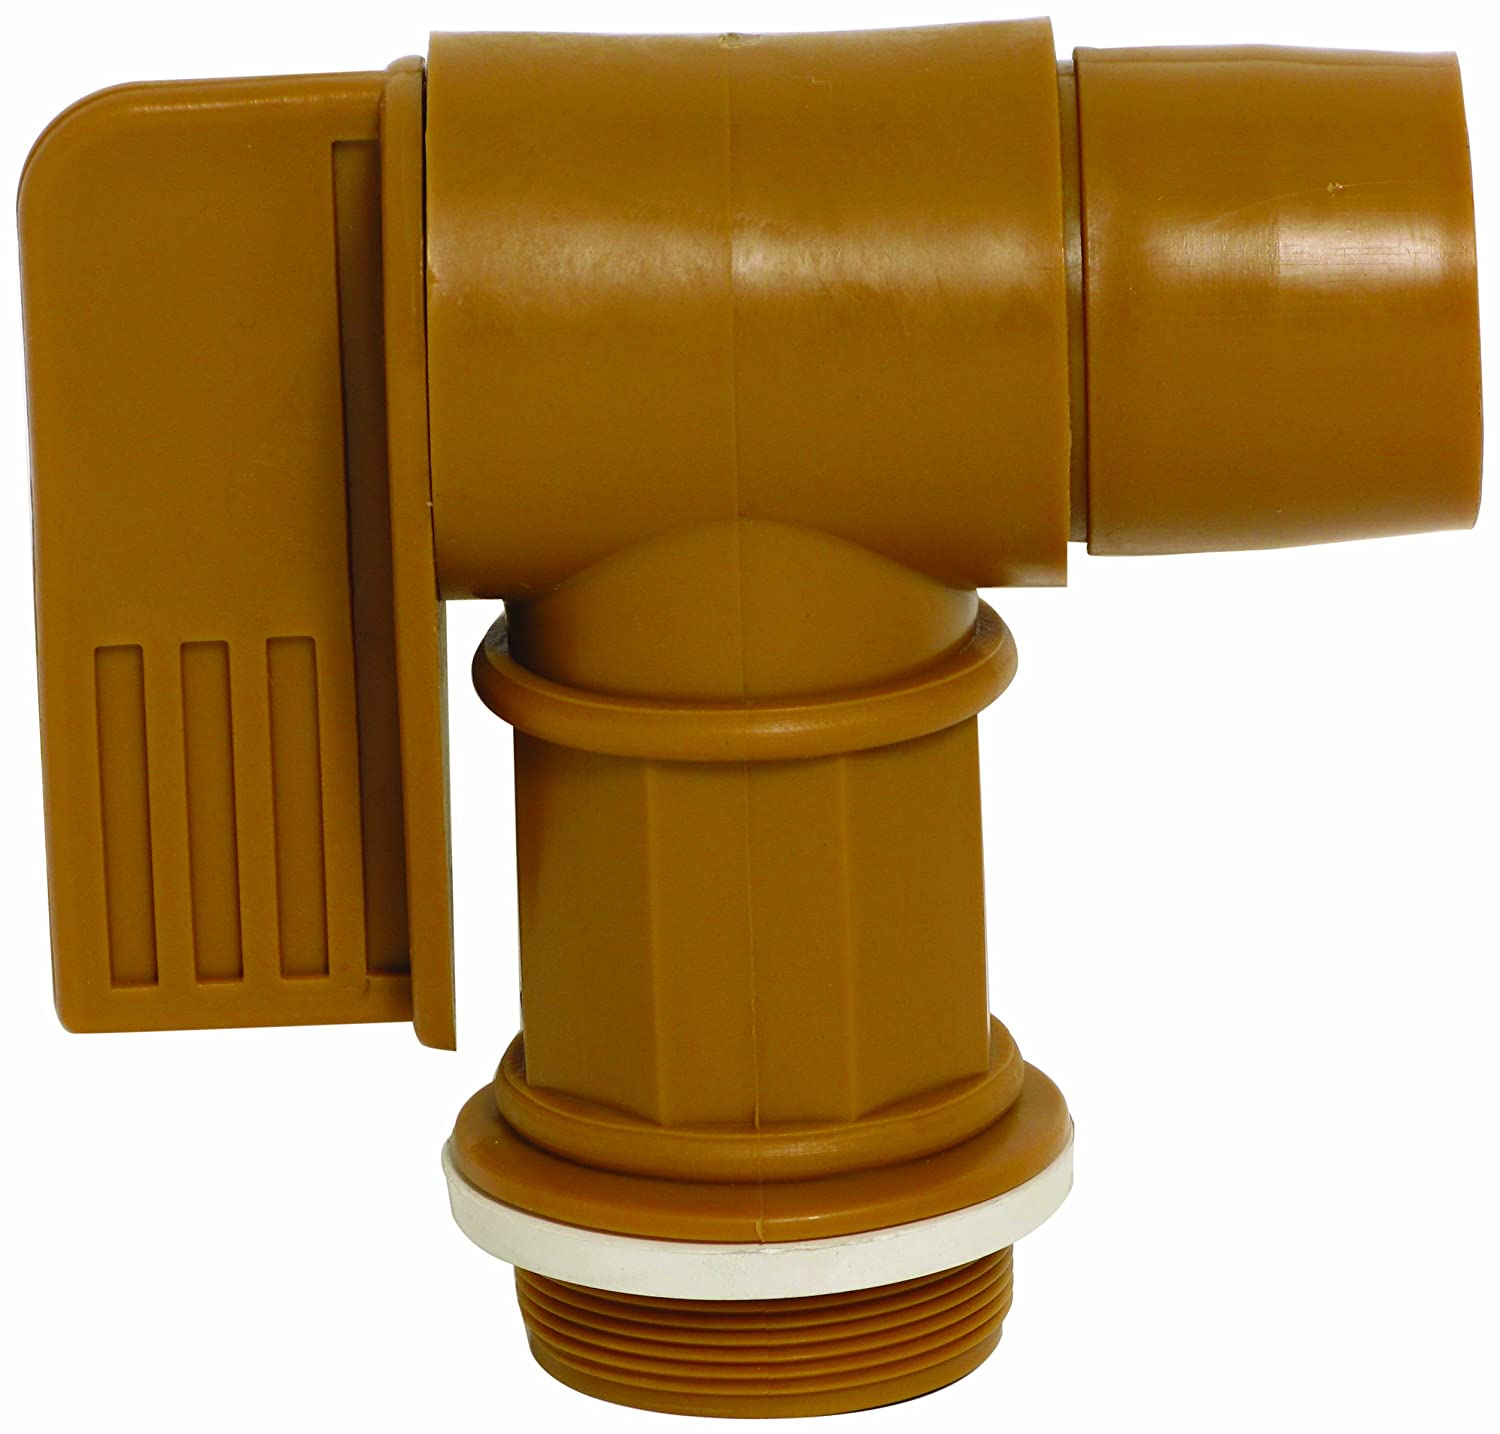 "Wesco 272176 Polyethylene Drum Faucet with EPDM Gasket, 2"" NPT Connection"